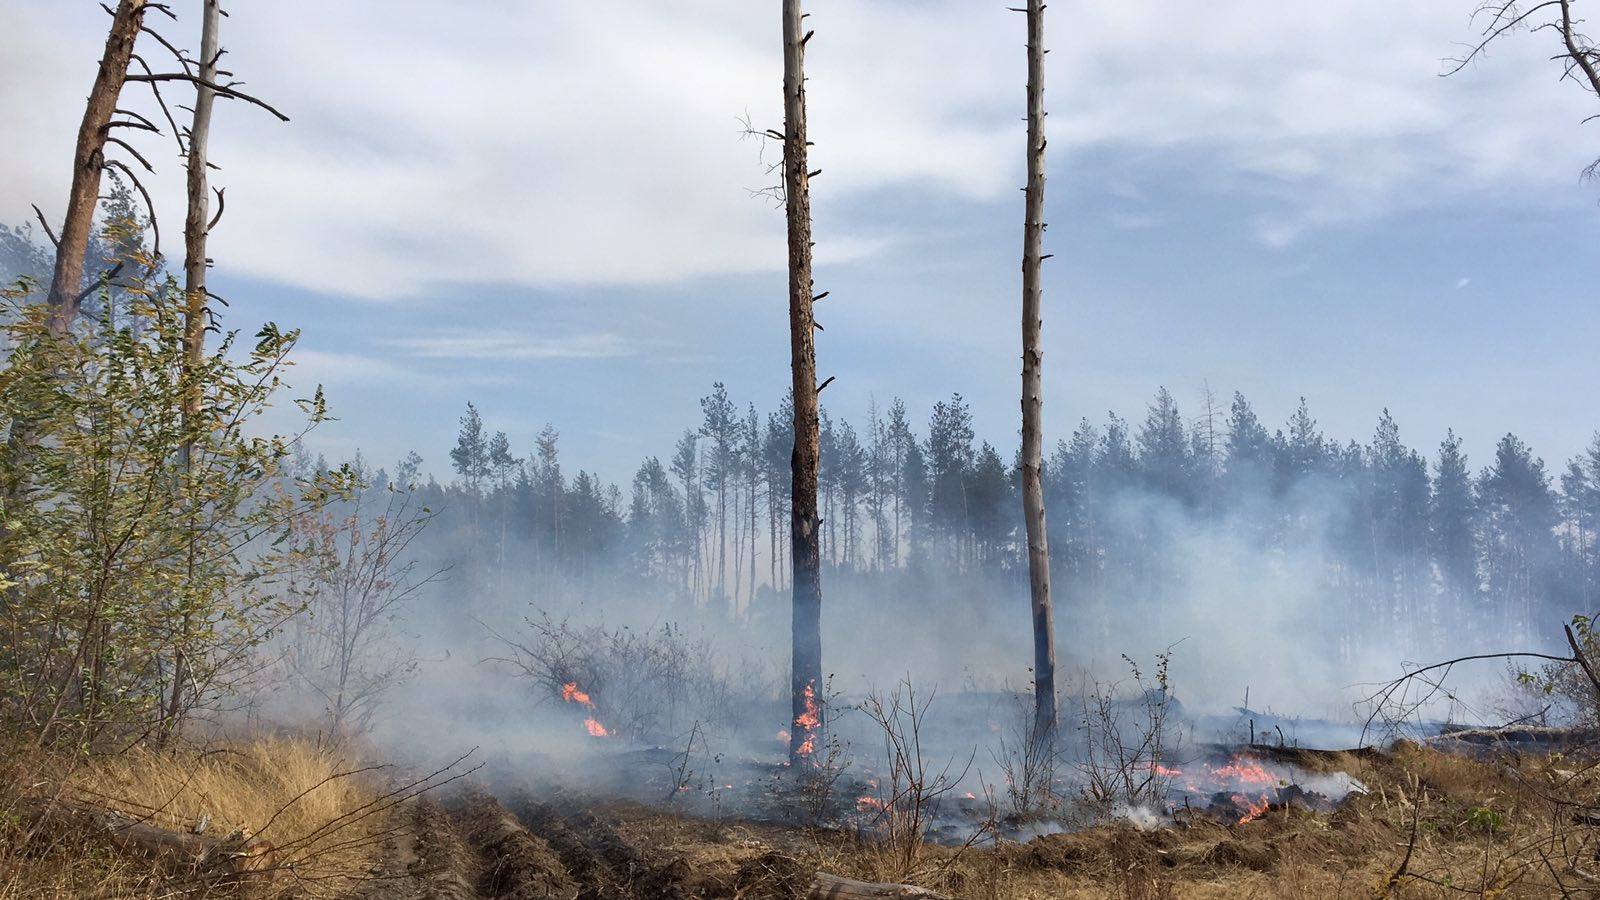 Fire burns in a forest in Luhansk region, Ukraine in this handout picture released September 30, 2020. Photo: State Emergency Service Of Ukraine/Handout via Reuters